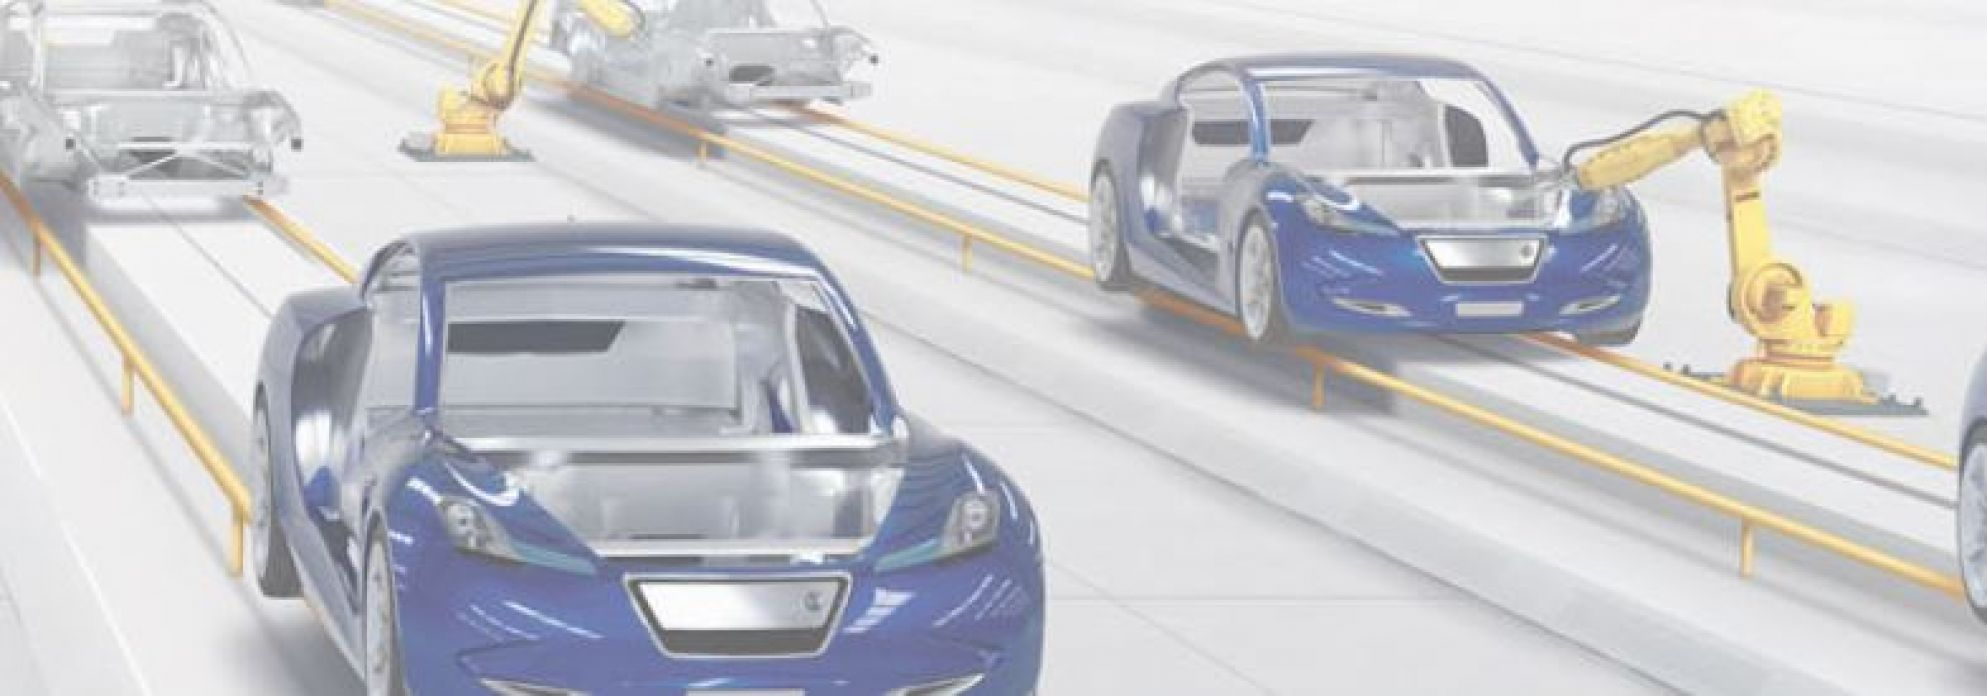 Improve Manufacturing Efficiency Whitepaper Cover > Car Manufacturing > Dassault Systèmes®